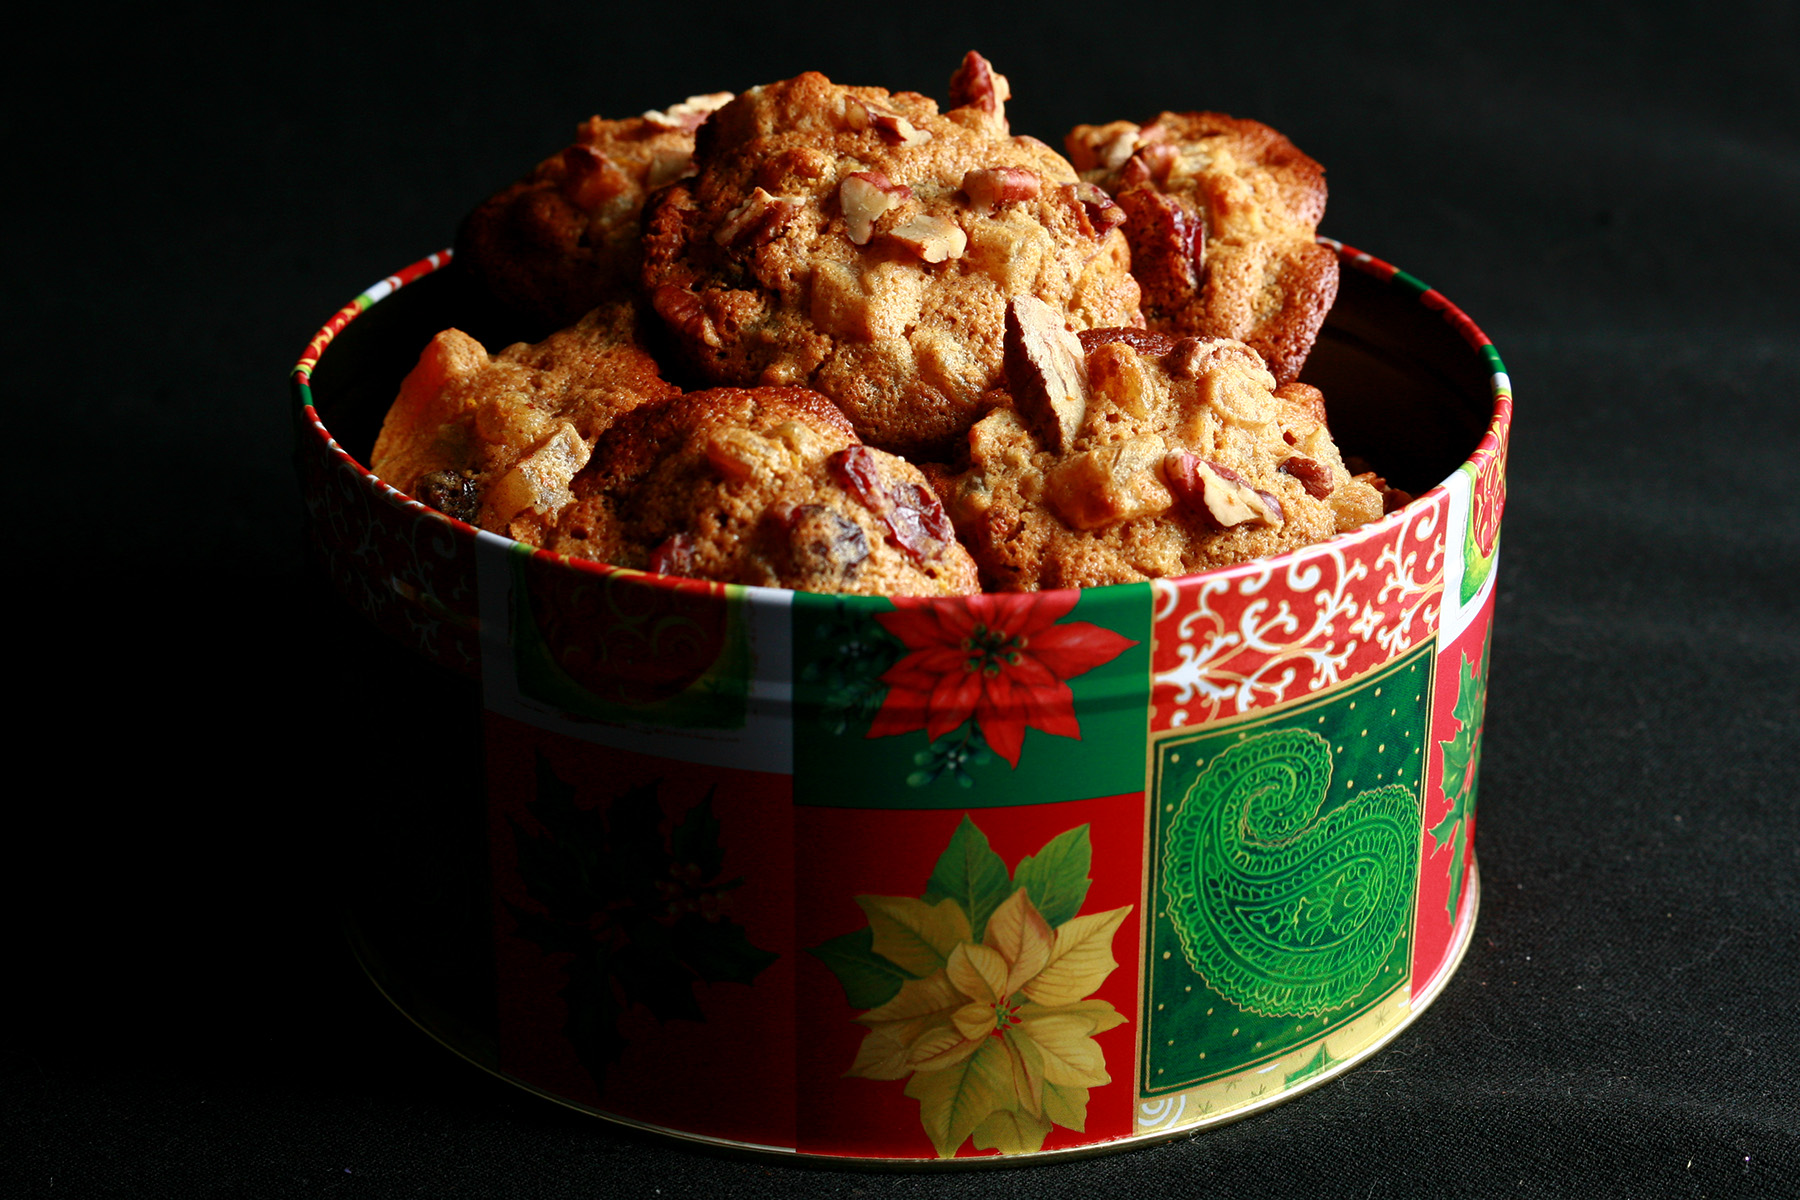 """""""A festive green and red holiday container is full of cookies. The cookies have visible pieces of fruits and nuts throughout."""